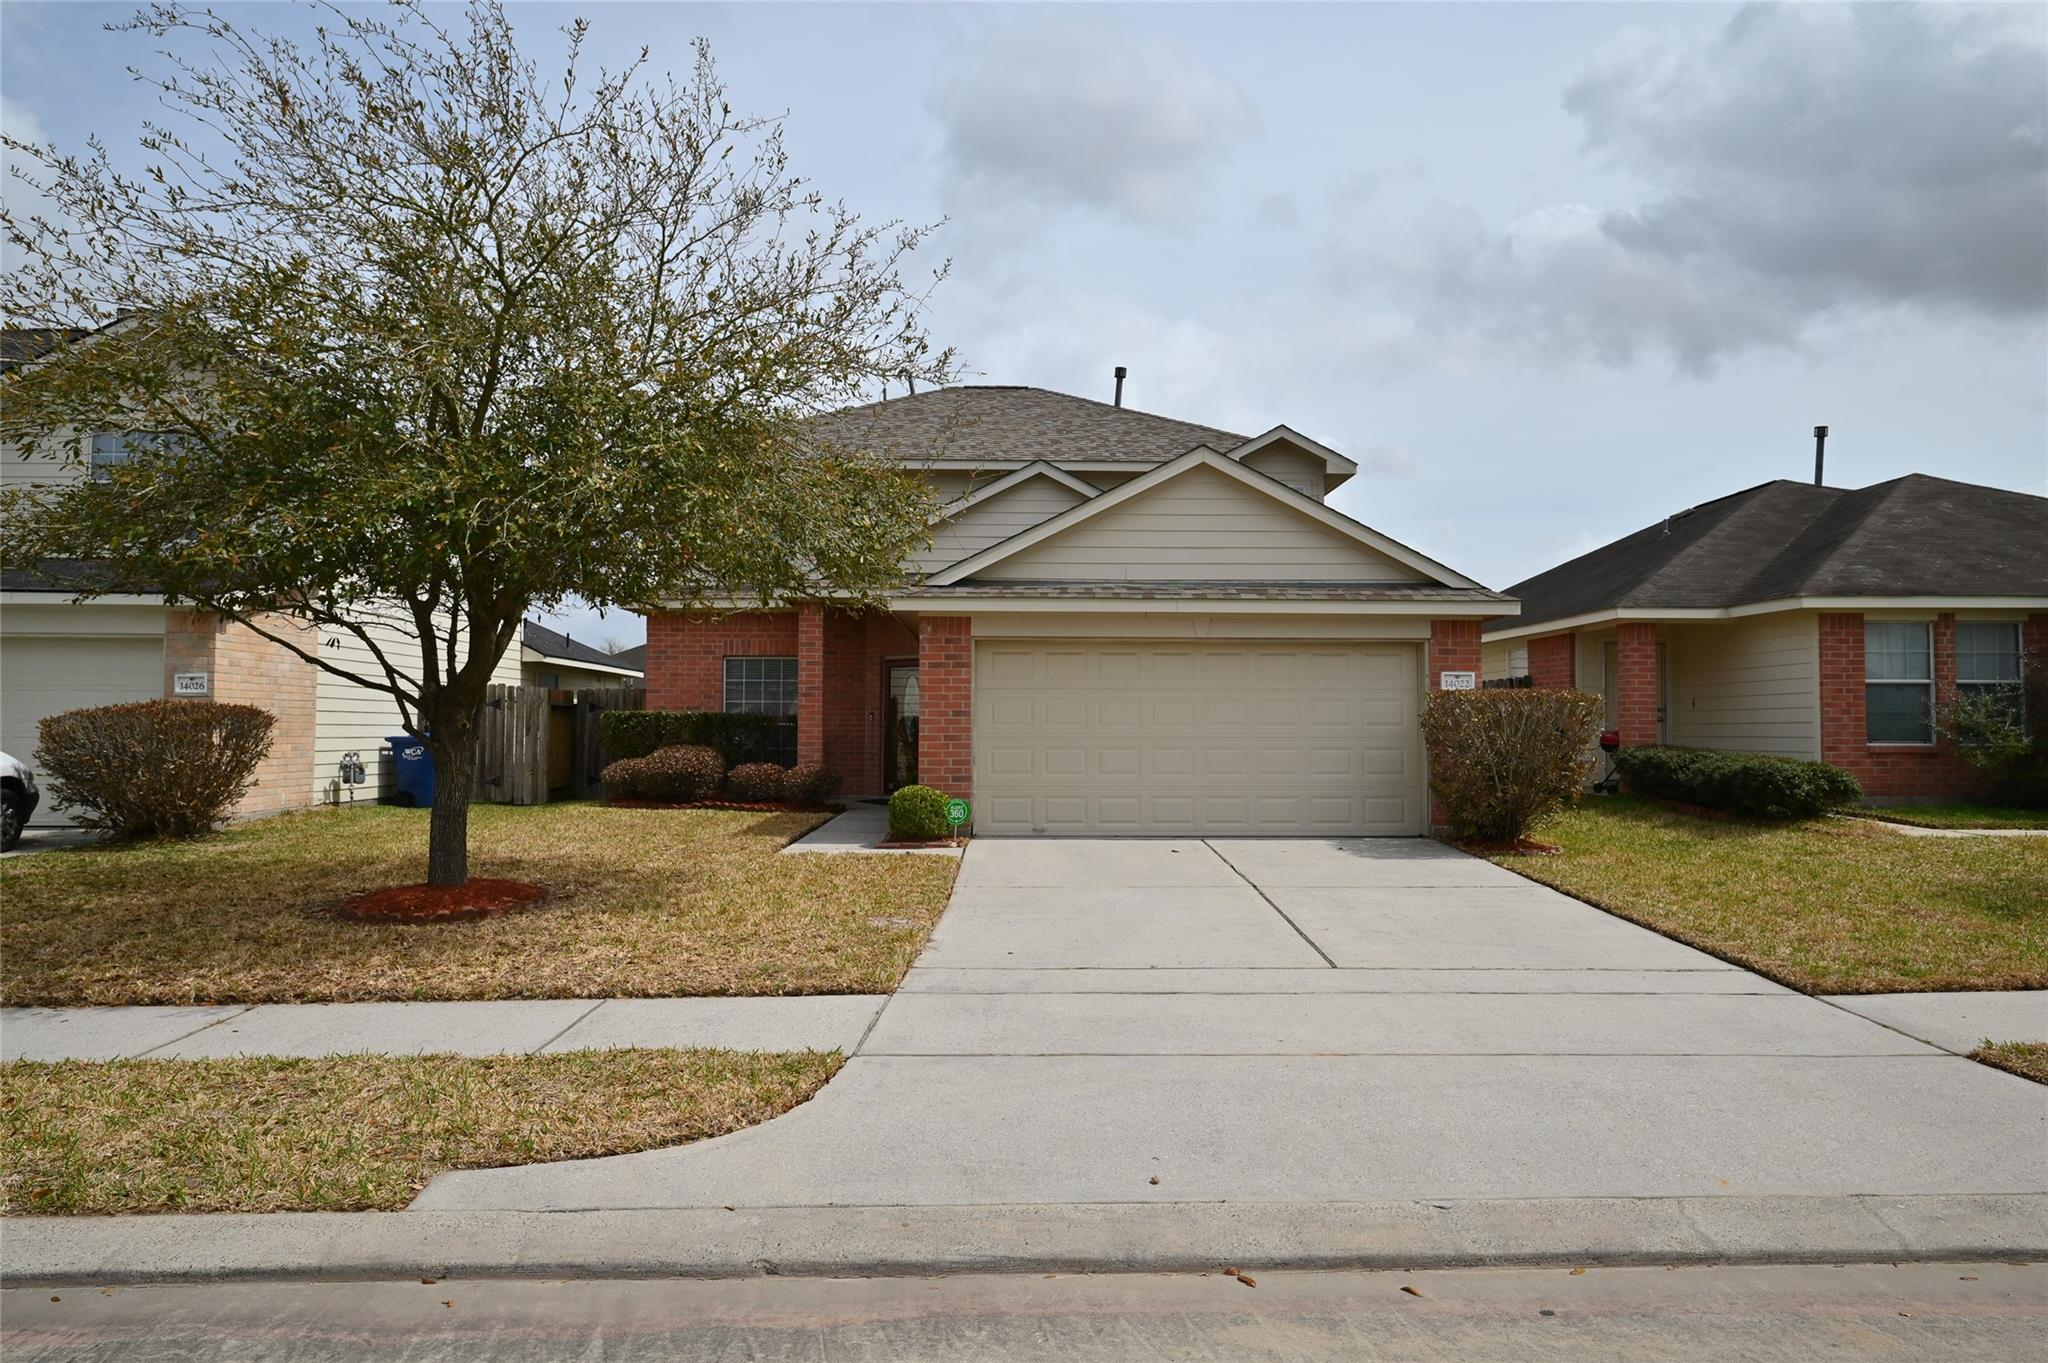 14022 Crestbourne Court NW #0 Property Photo - Houston, TX real estate listing